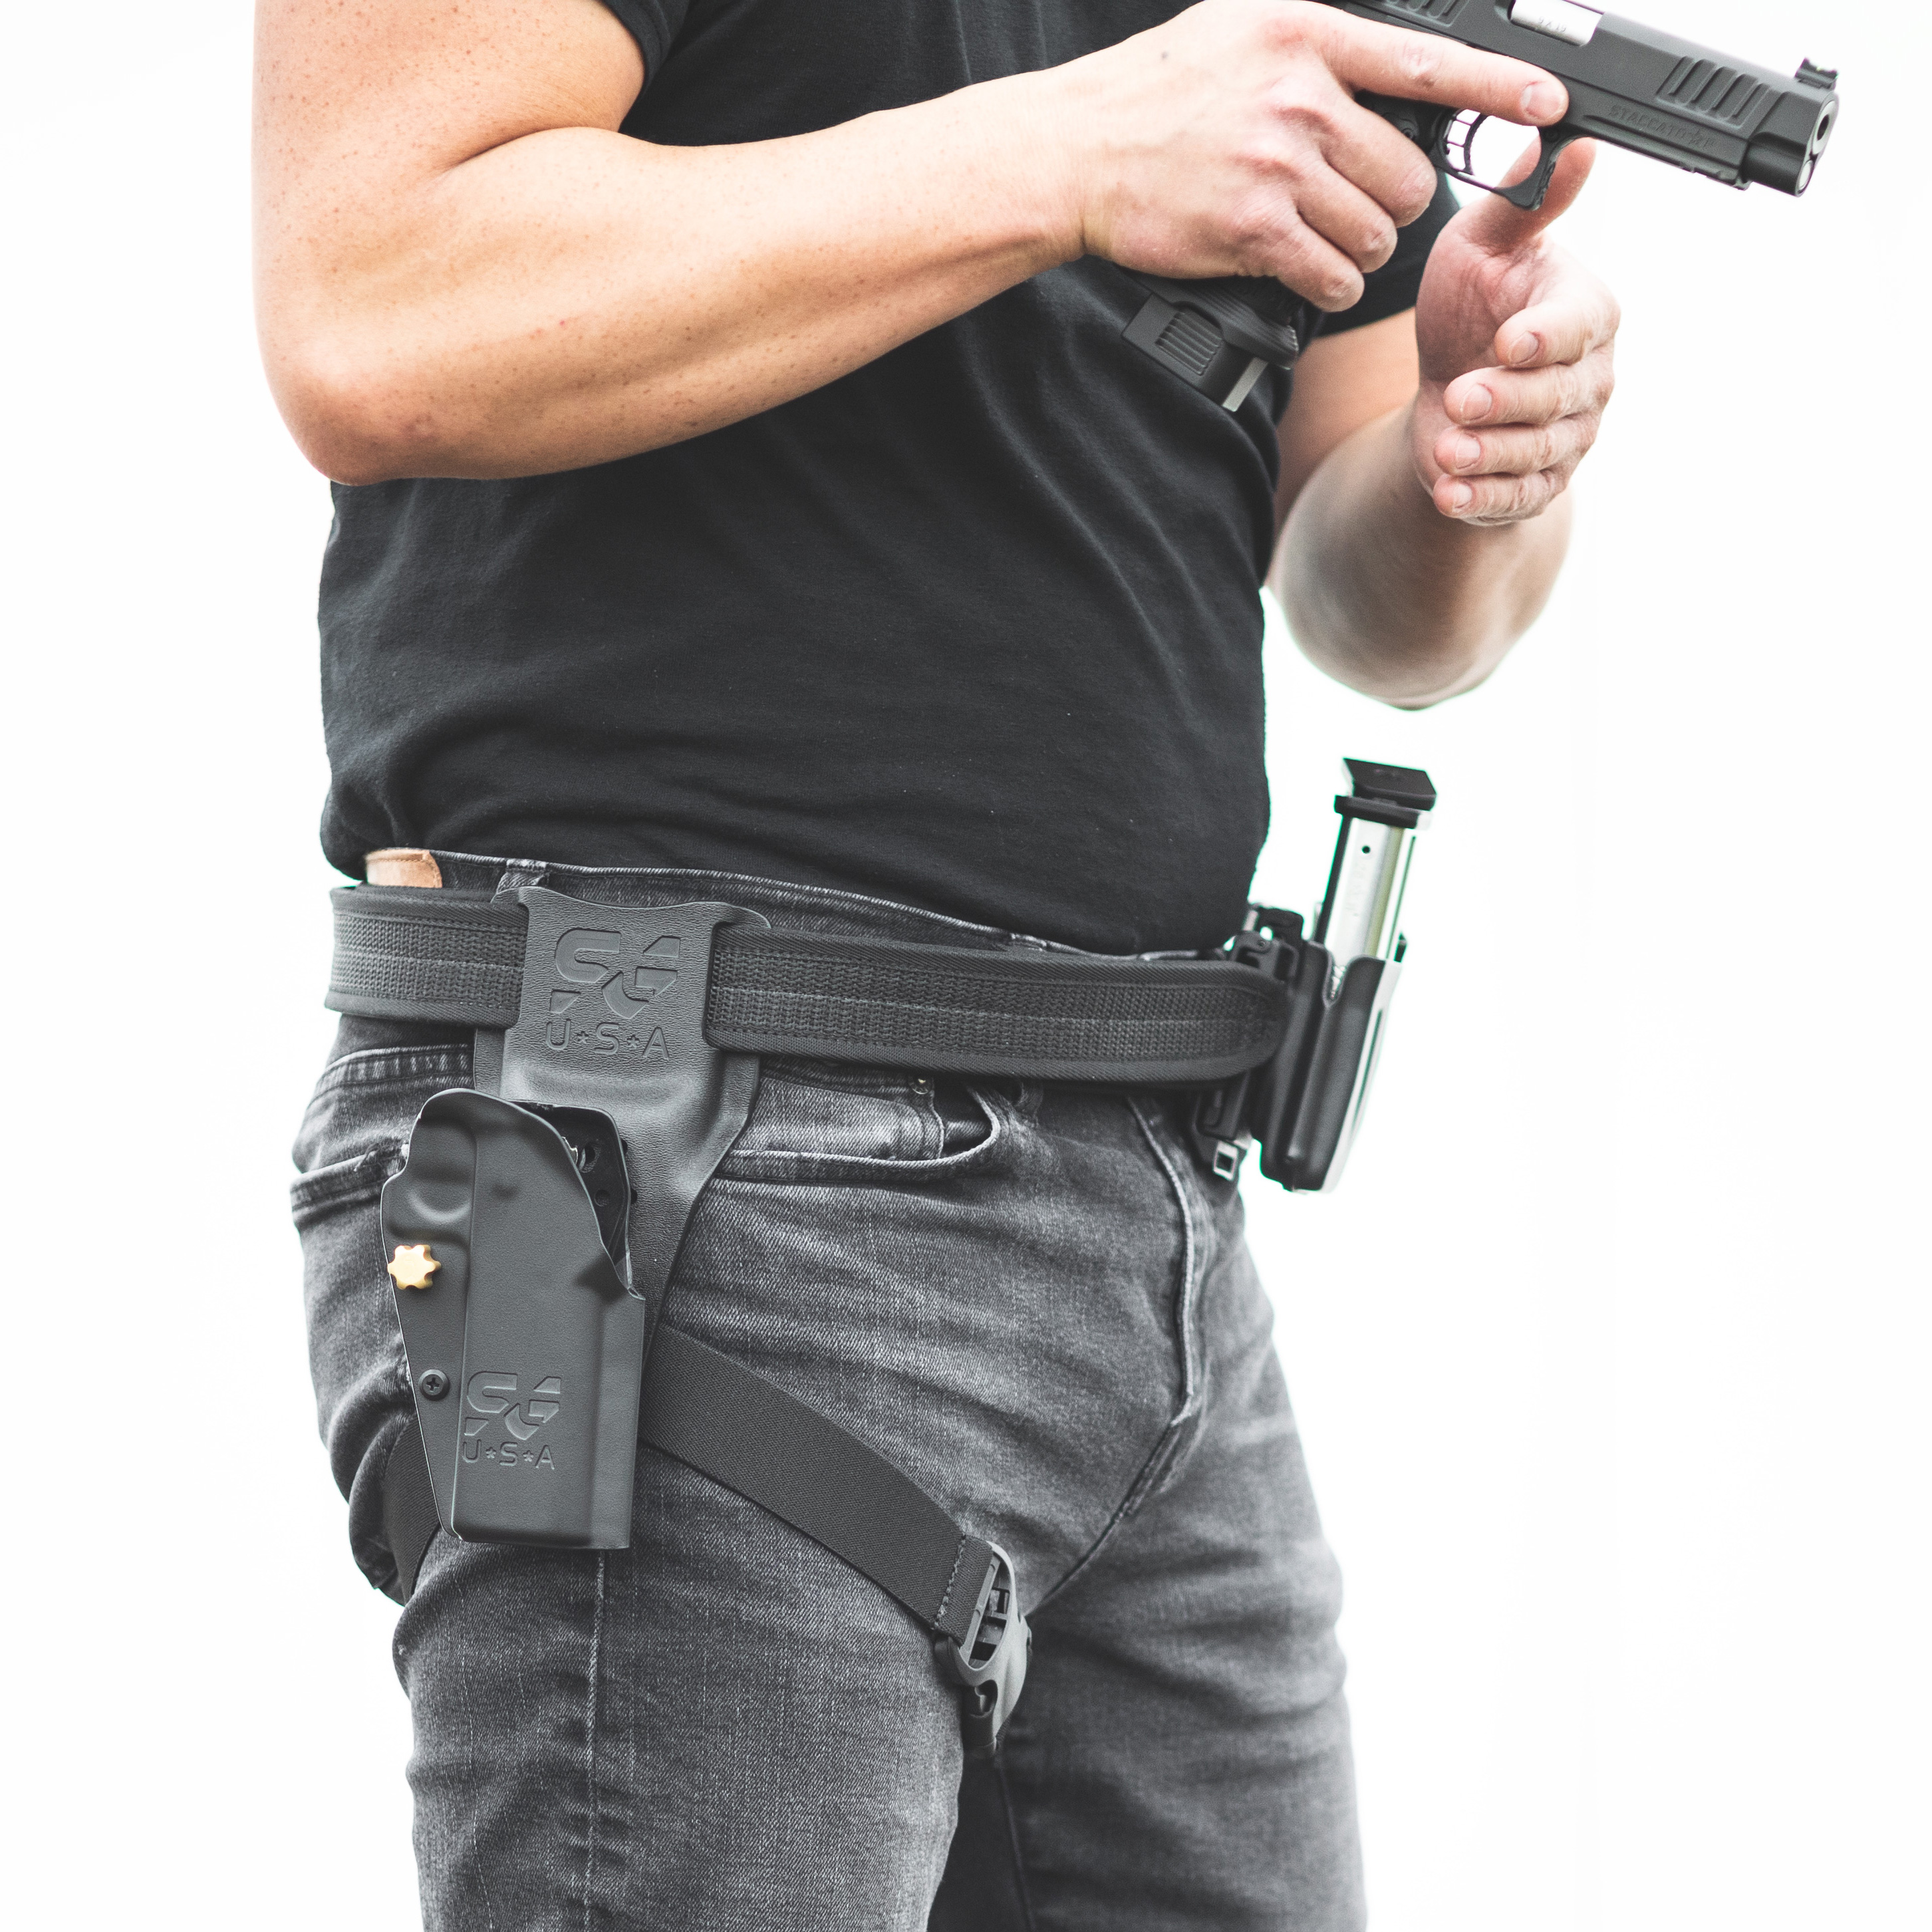 stealthgearusa-sg-x-competition-holster-launch-homepage-banner-drawn-square-crop.jpg